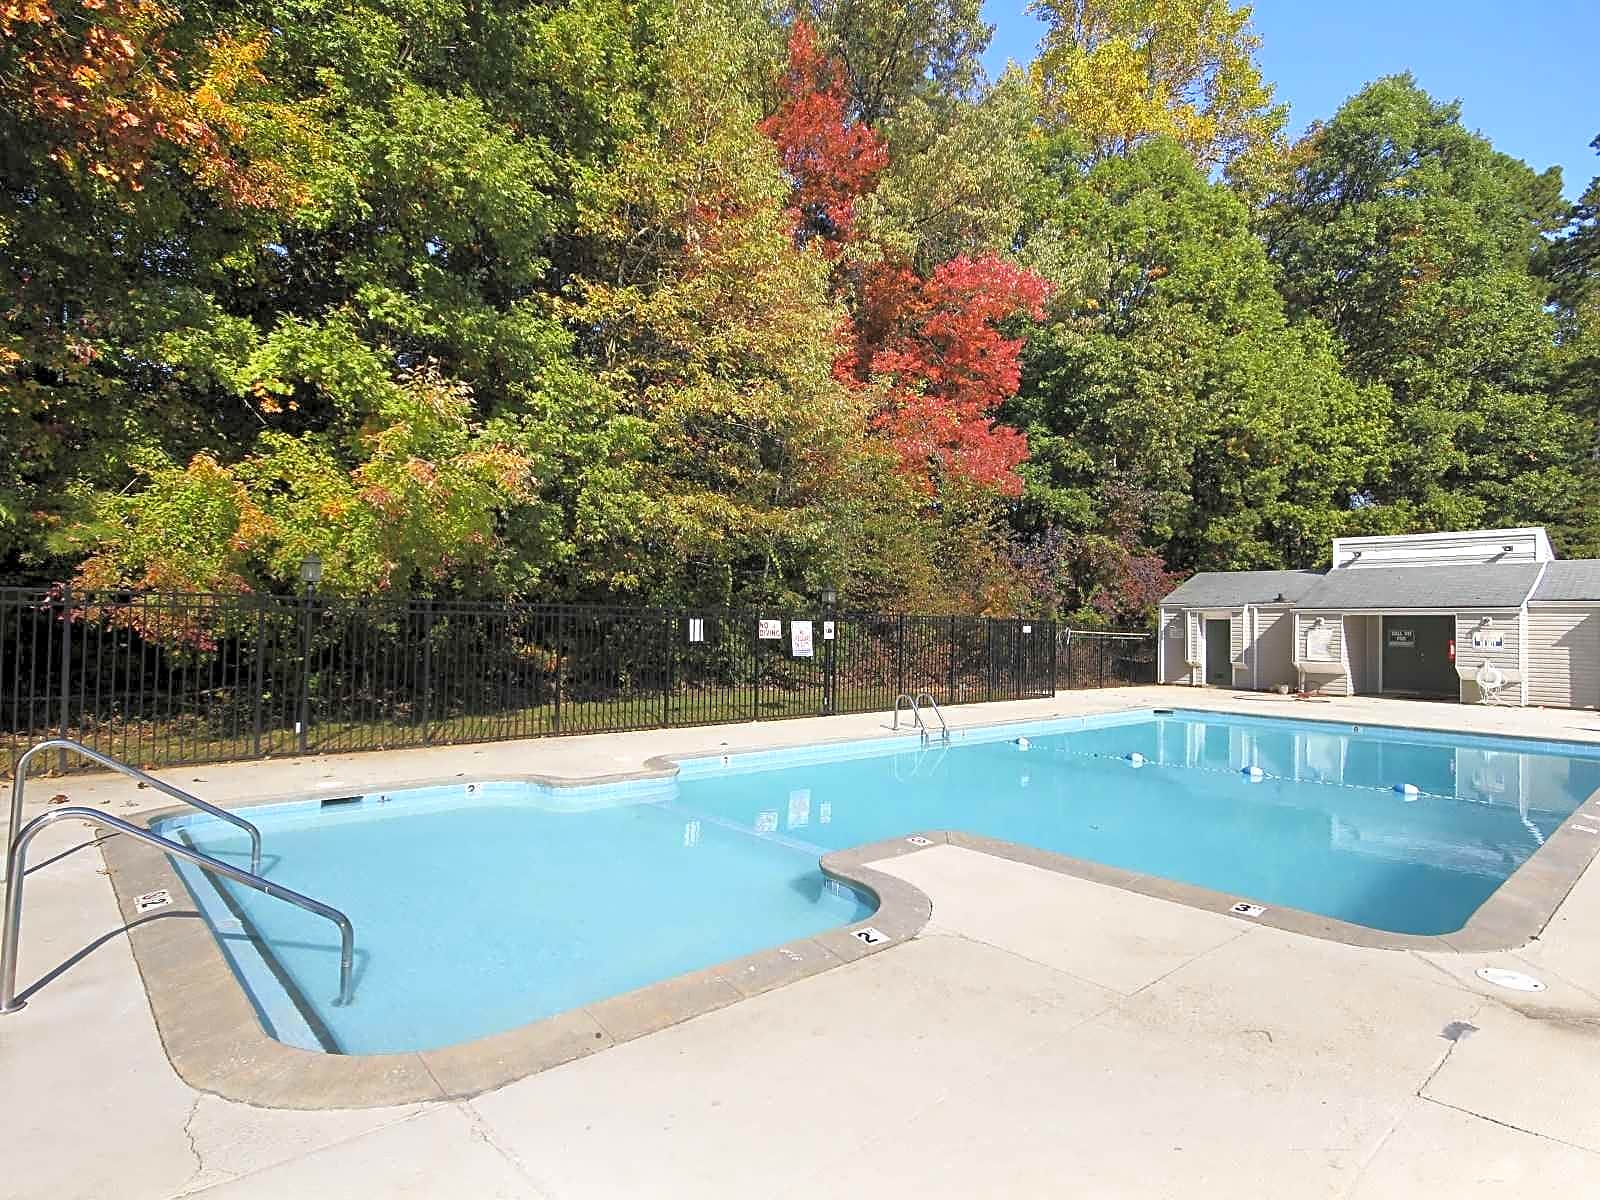 Photo: Greensboro Apartment for Rent - $755.00 / month; 3 Bd & 2 Ba